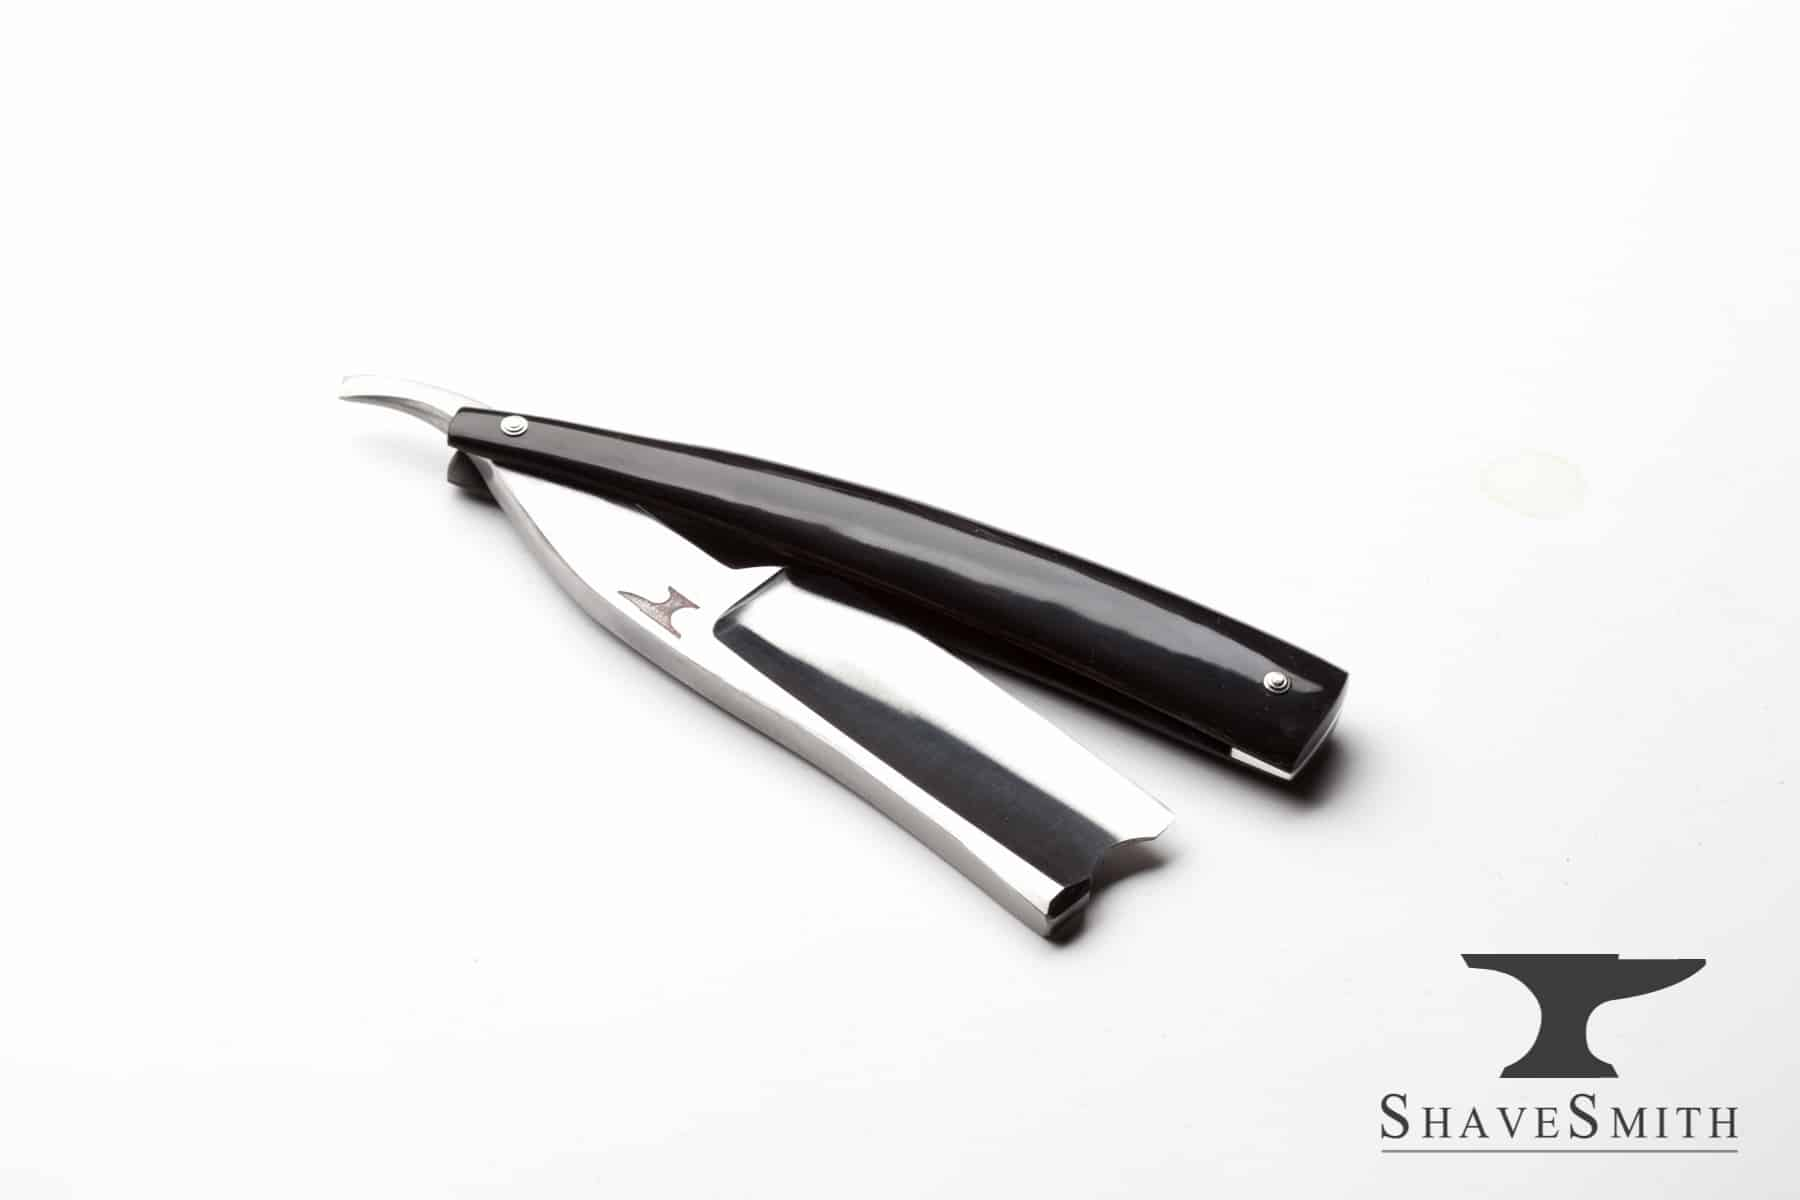 "A recent interpretation of an 1800's classic Sheffield design, often called the ""For Barber's Use"". A name given to the largest blades made by the English razor makers, affectionately known as choppers. Keen shaver, nice grind, and a beautiful junction between polished steel, ox horn, and a subtle engraving as a reminder of those who mean the most to us."